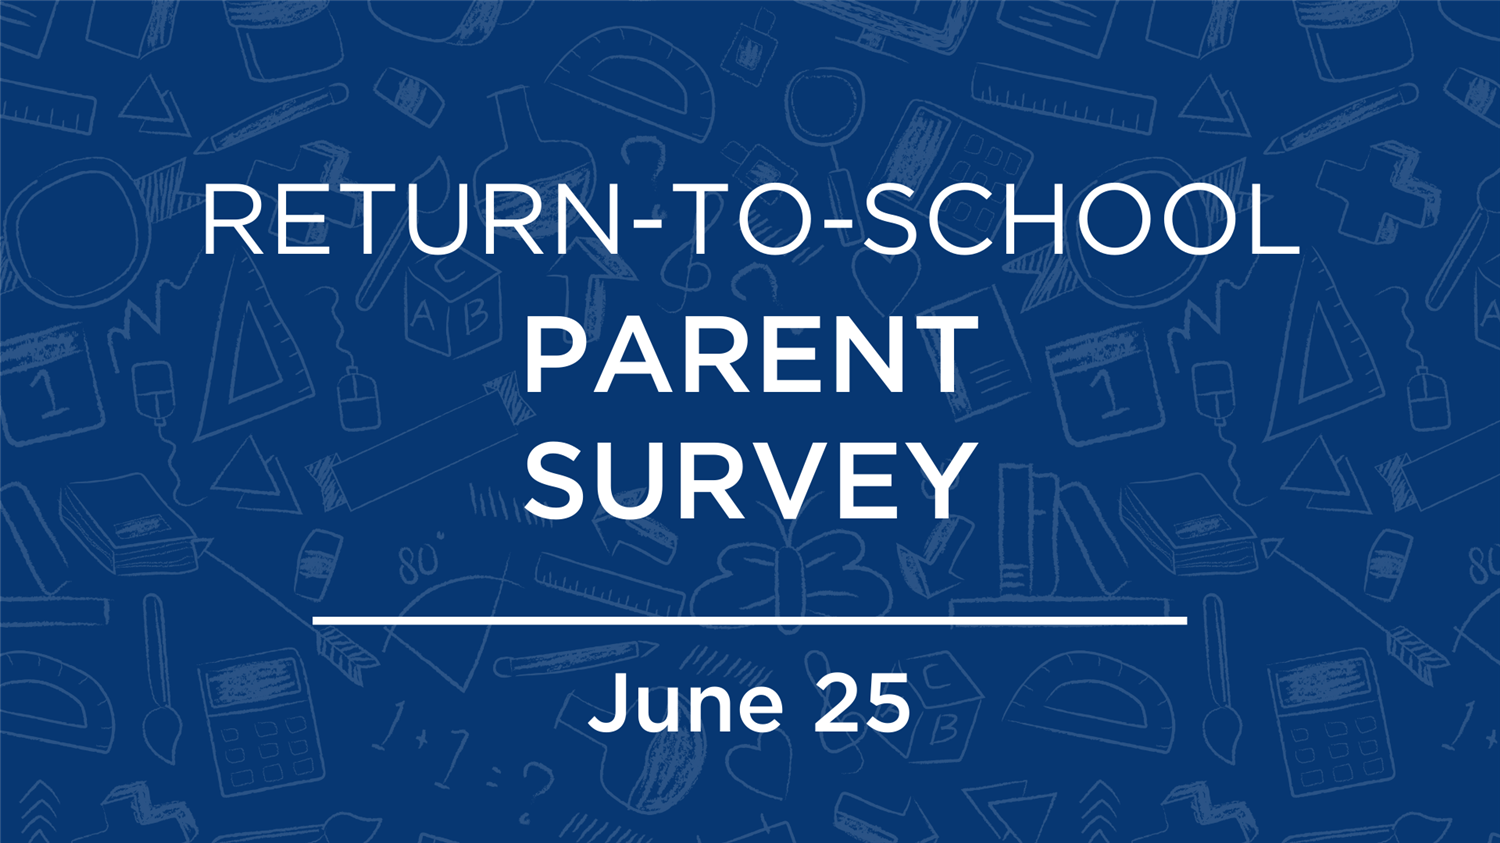 LISD Parent Survey